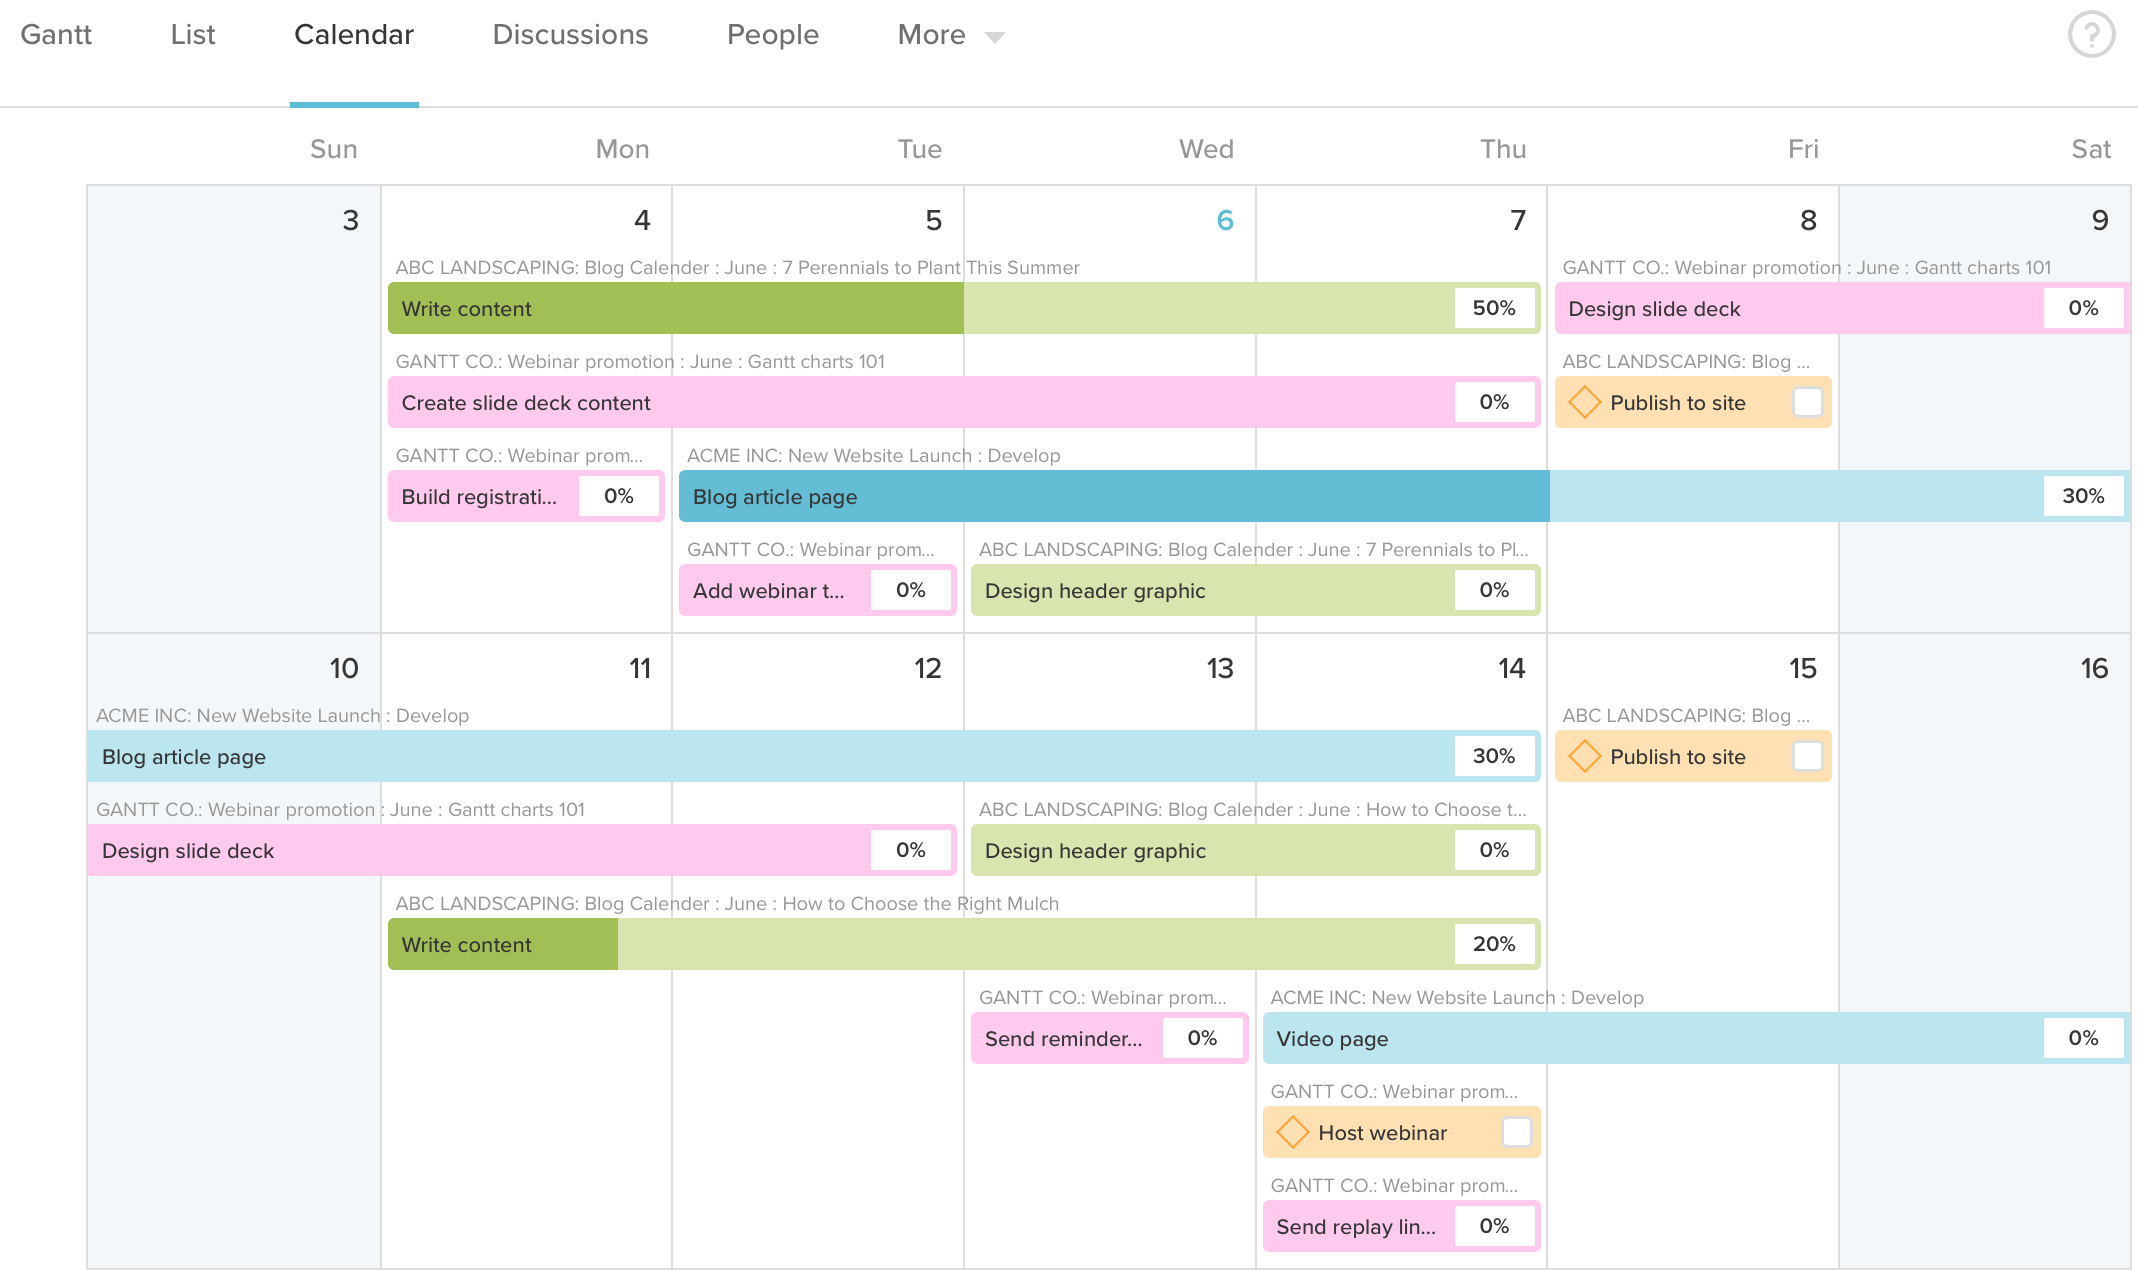 Calendar view of project in TeamGantt